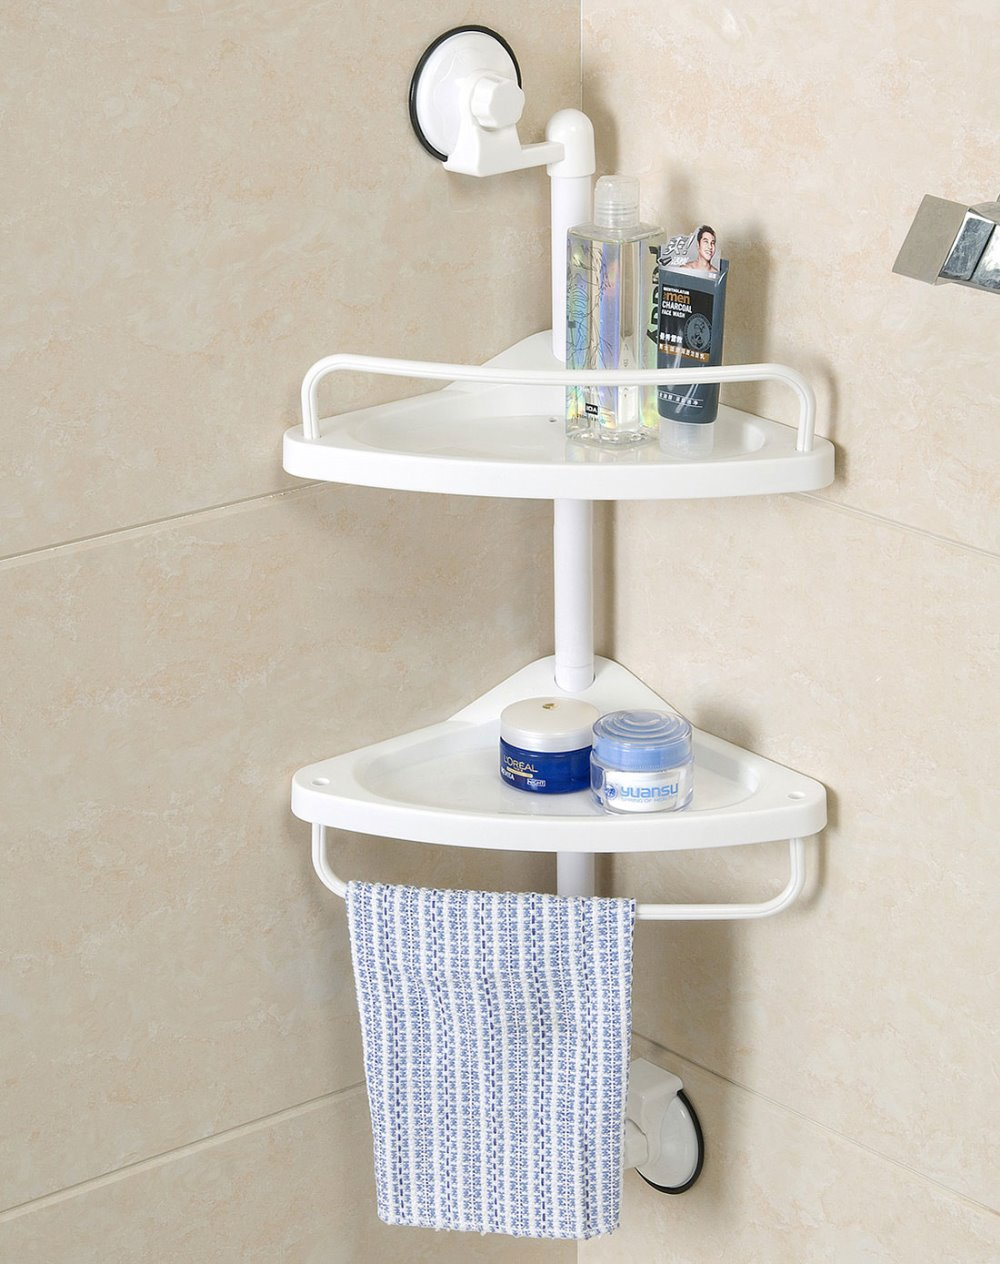 Super Strong Suction Wall Adsorption Two Racks Bathroom